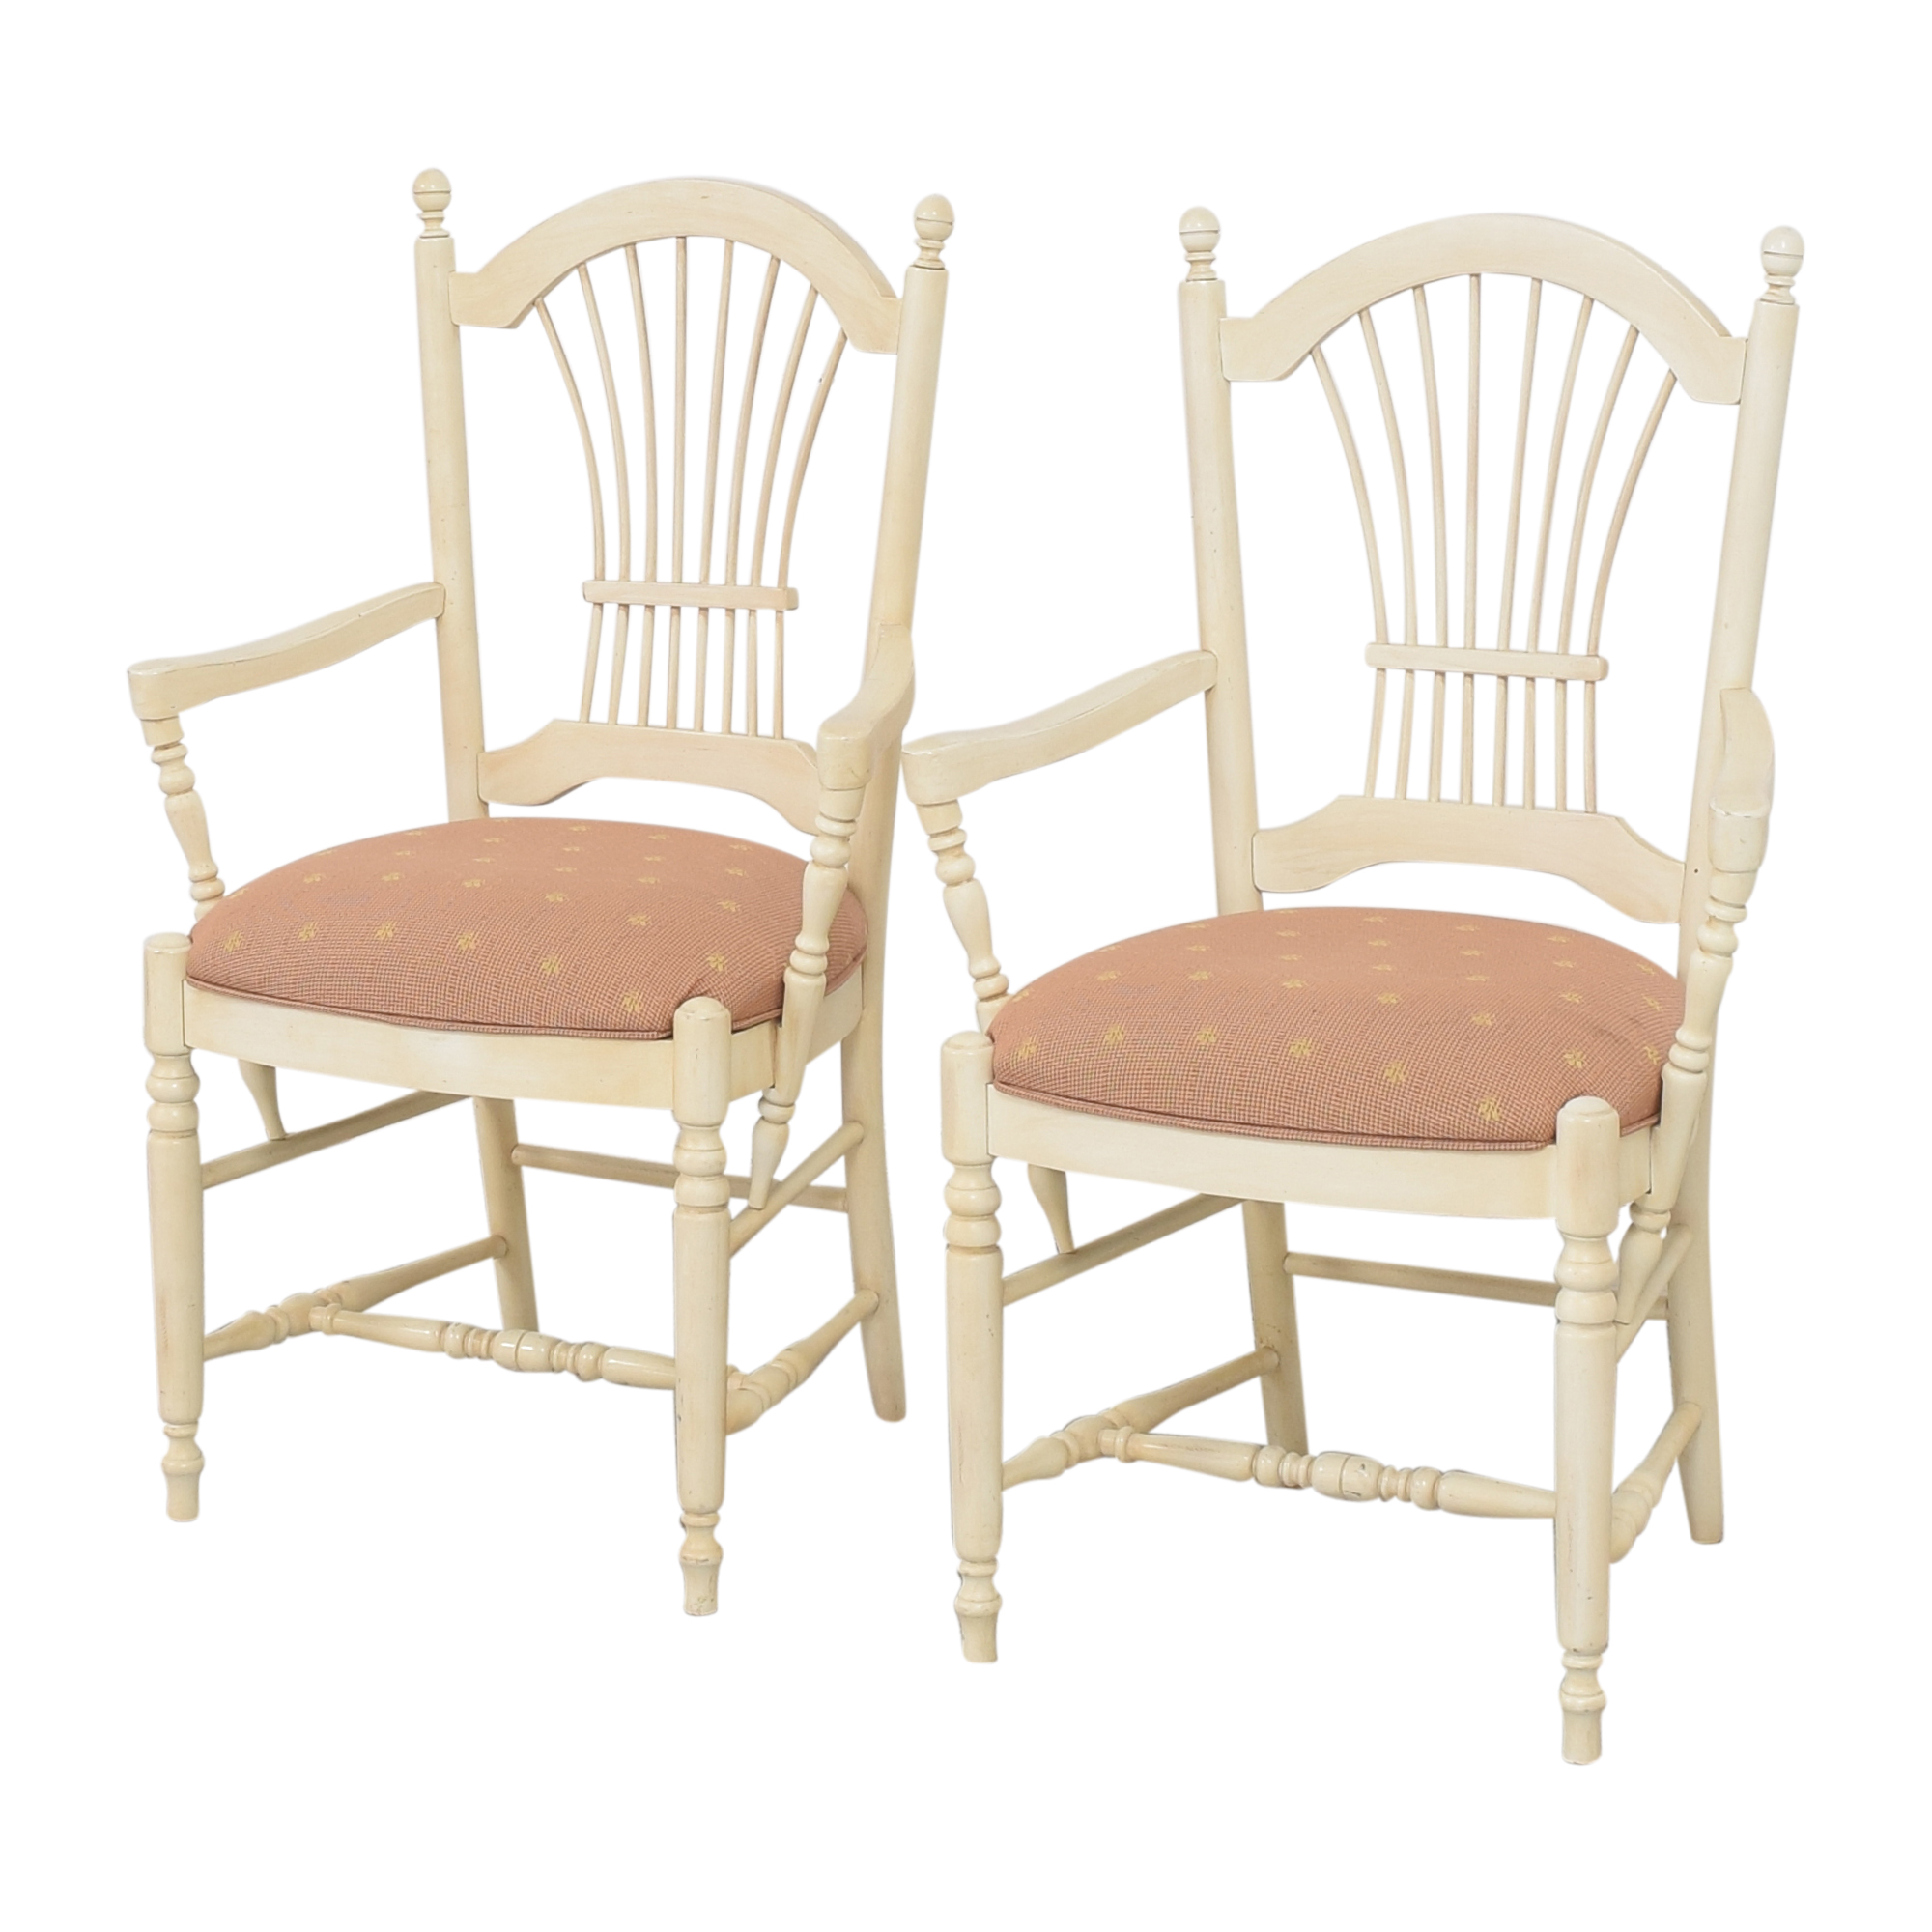 Ethan Allen Ethan Allen Country French Dining Arm Chairs for sale